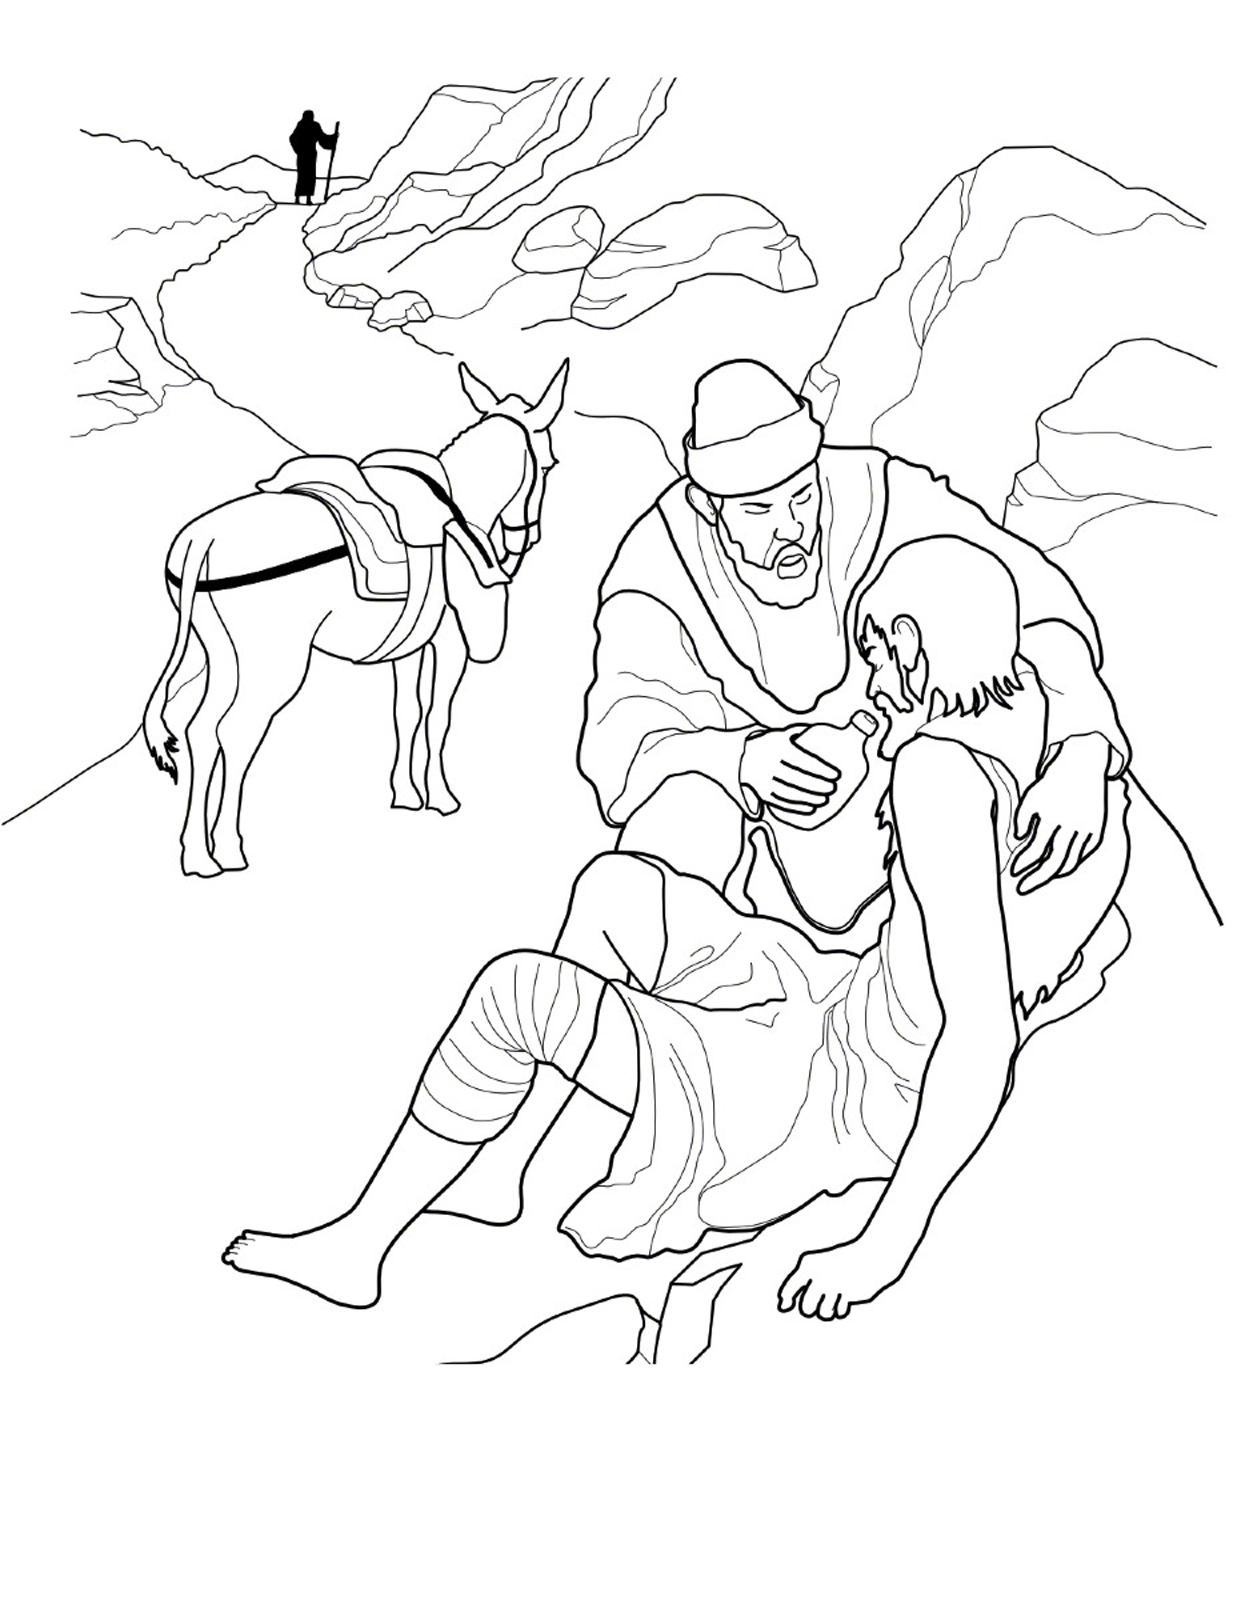 the good samaritan - The Good Samaritan Coloring Pages